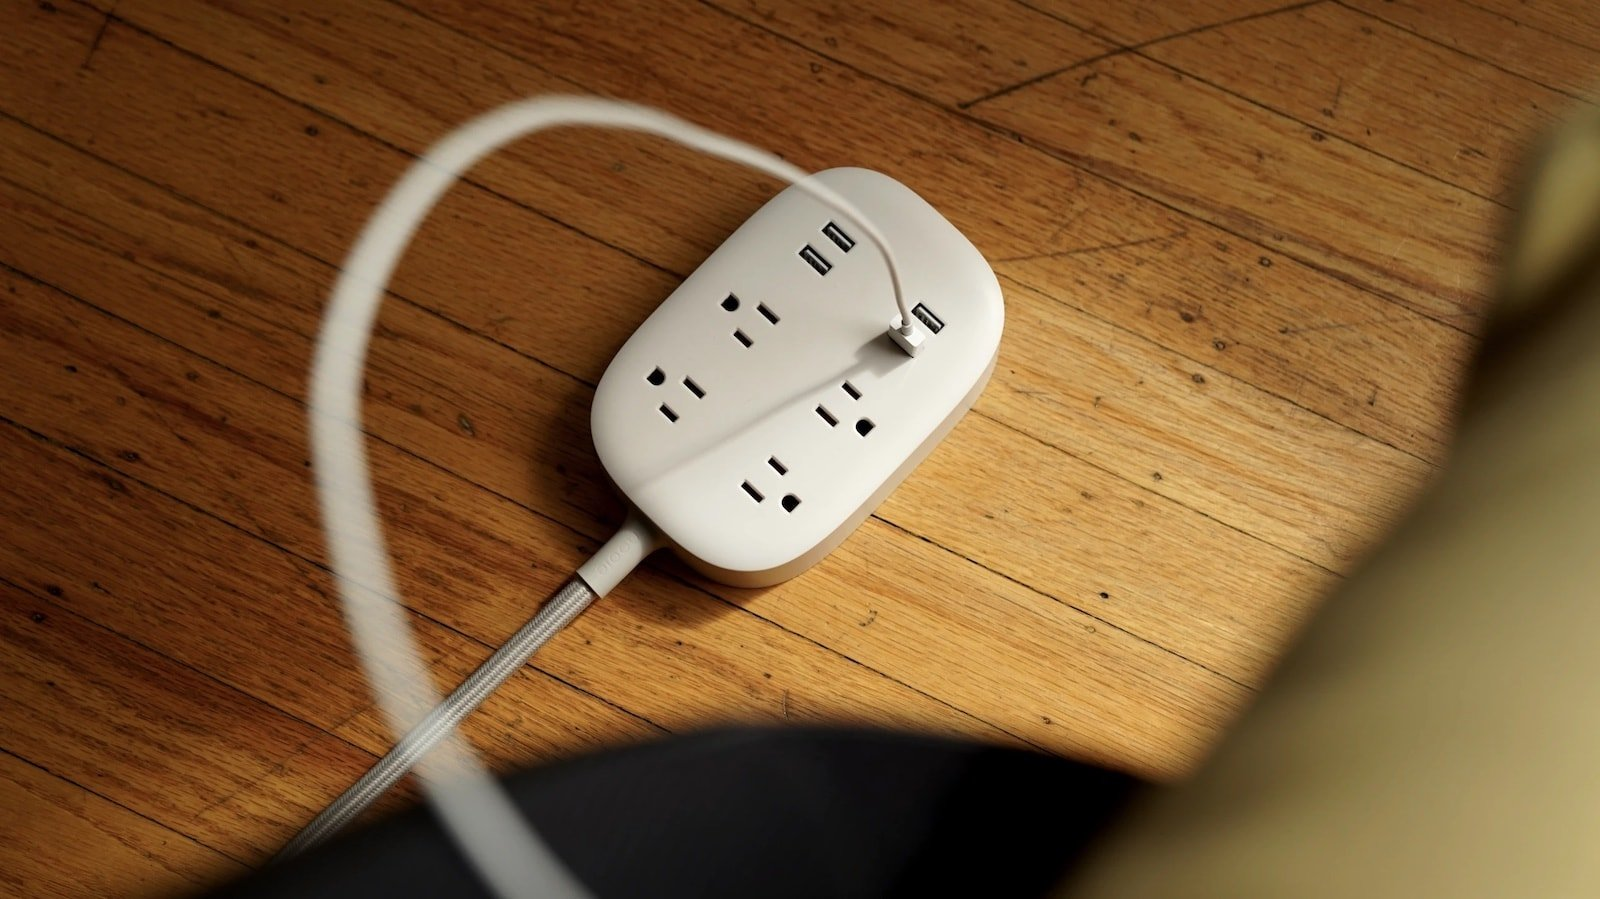 Nooie Smart Power Strip has four sockets and four USB ports